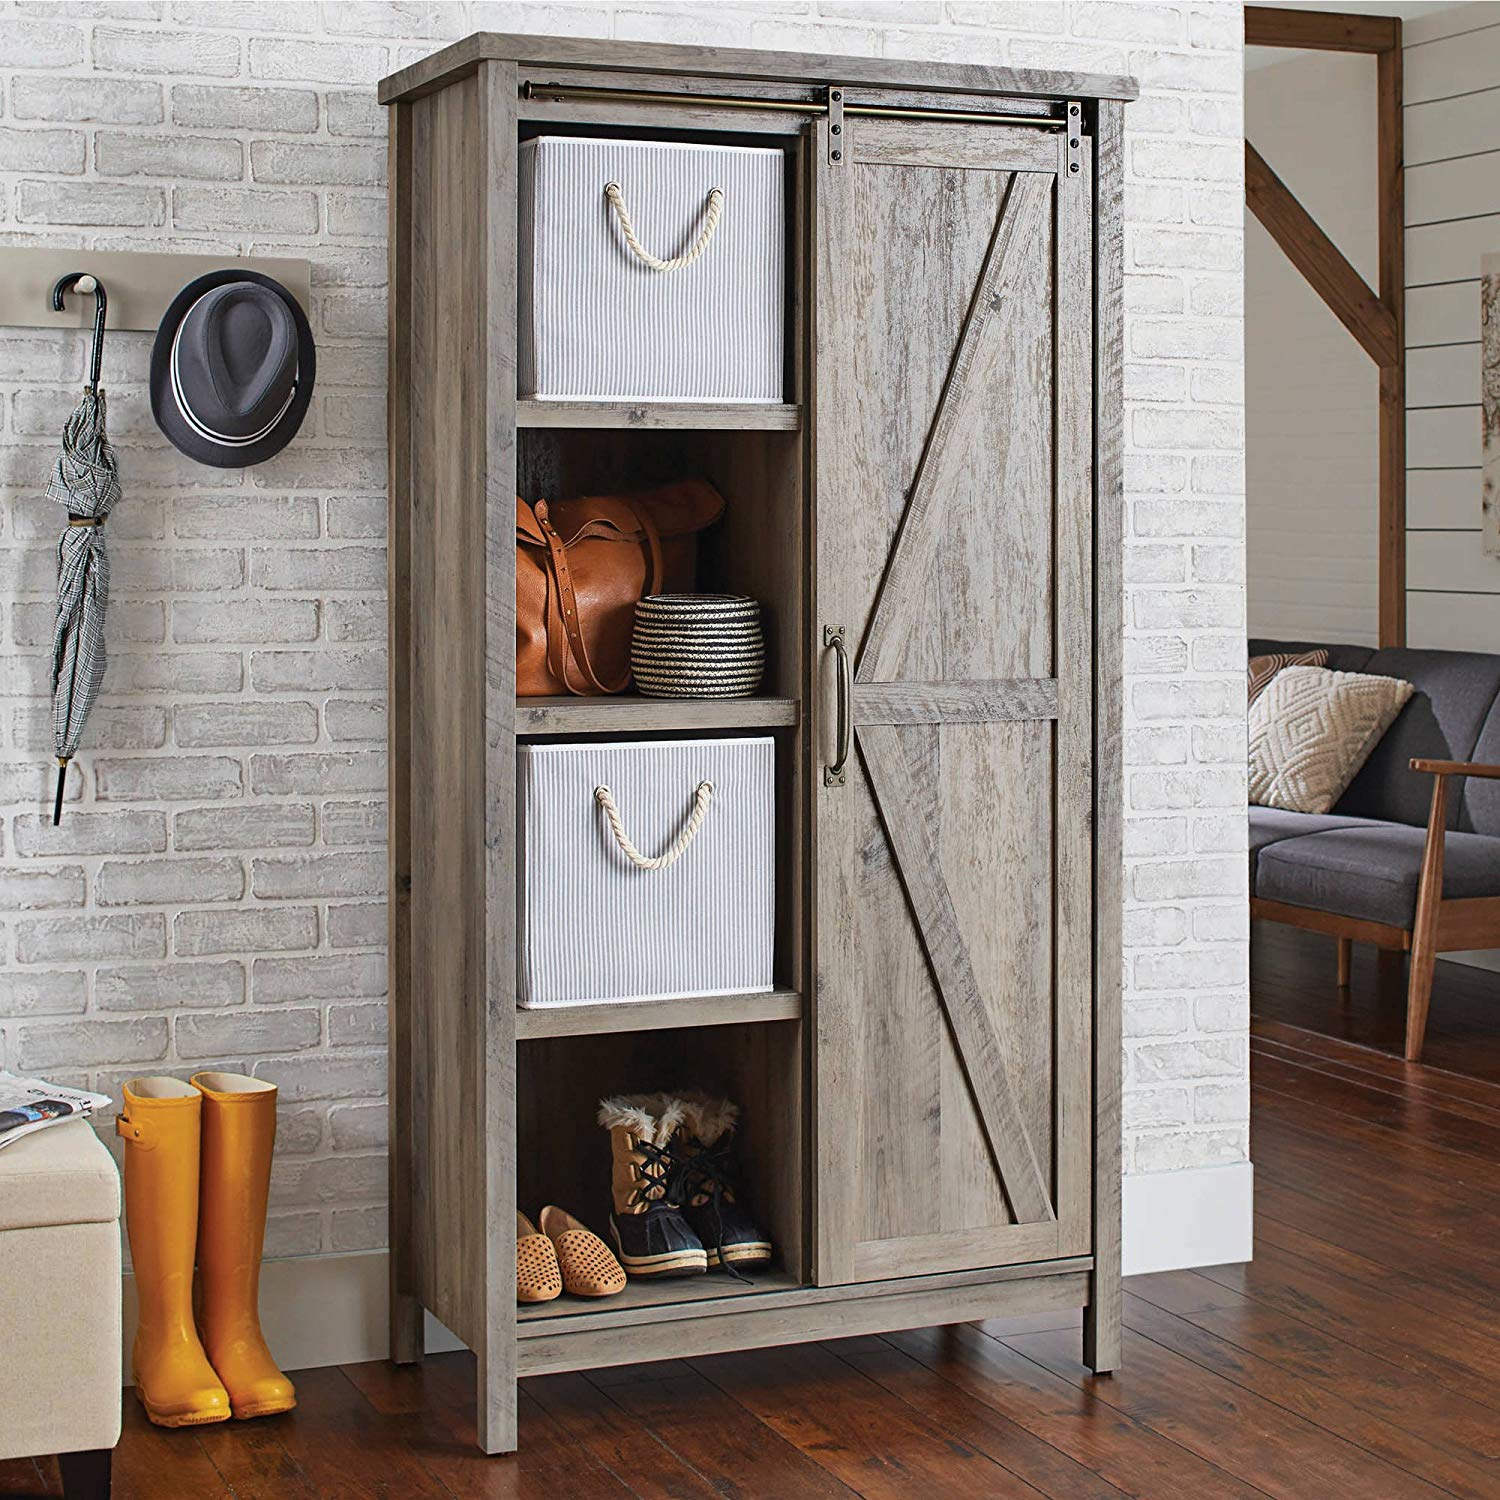 better homes and gardens storage cabinet rustic gray accent table multiple colors finish kitchen dining nautical themed end tables glass door linens solid wood small tiffany style